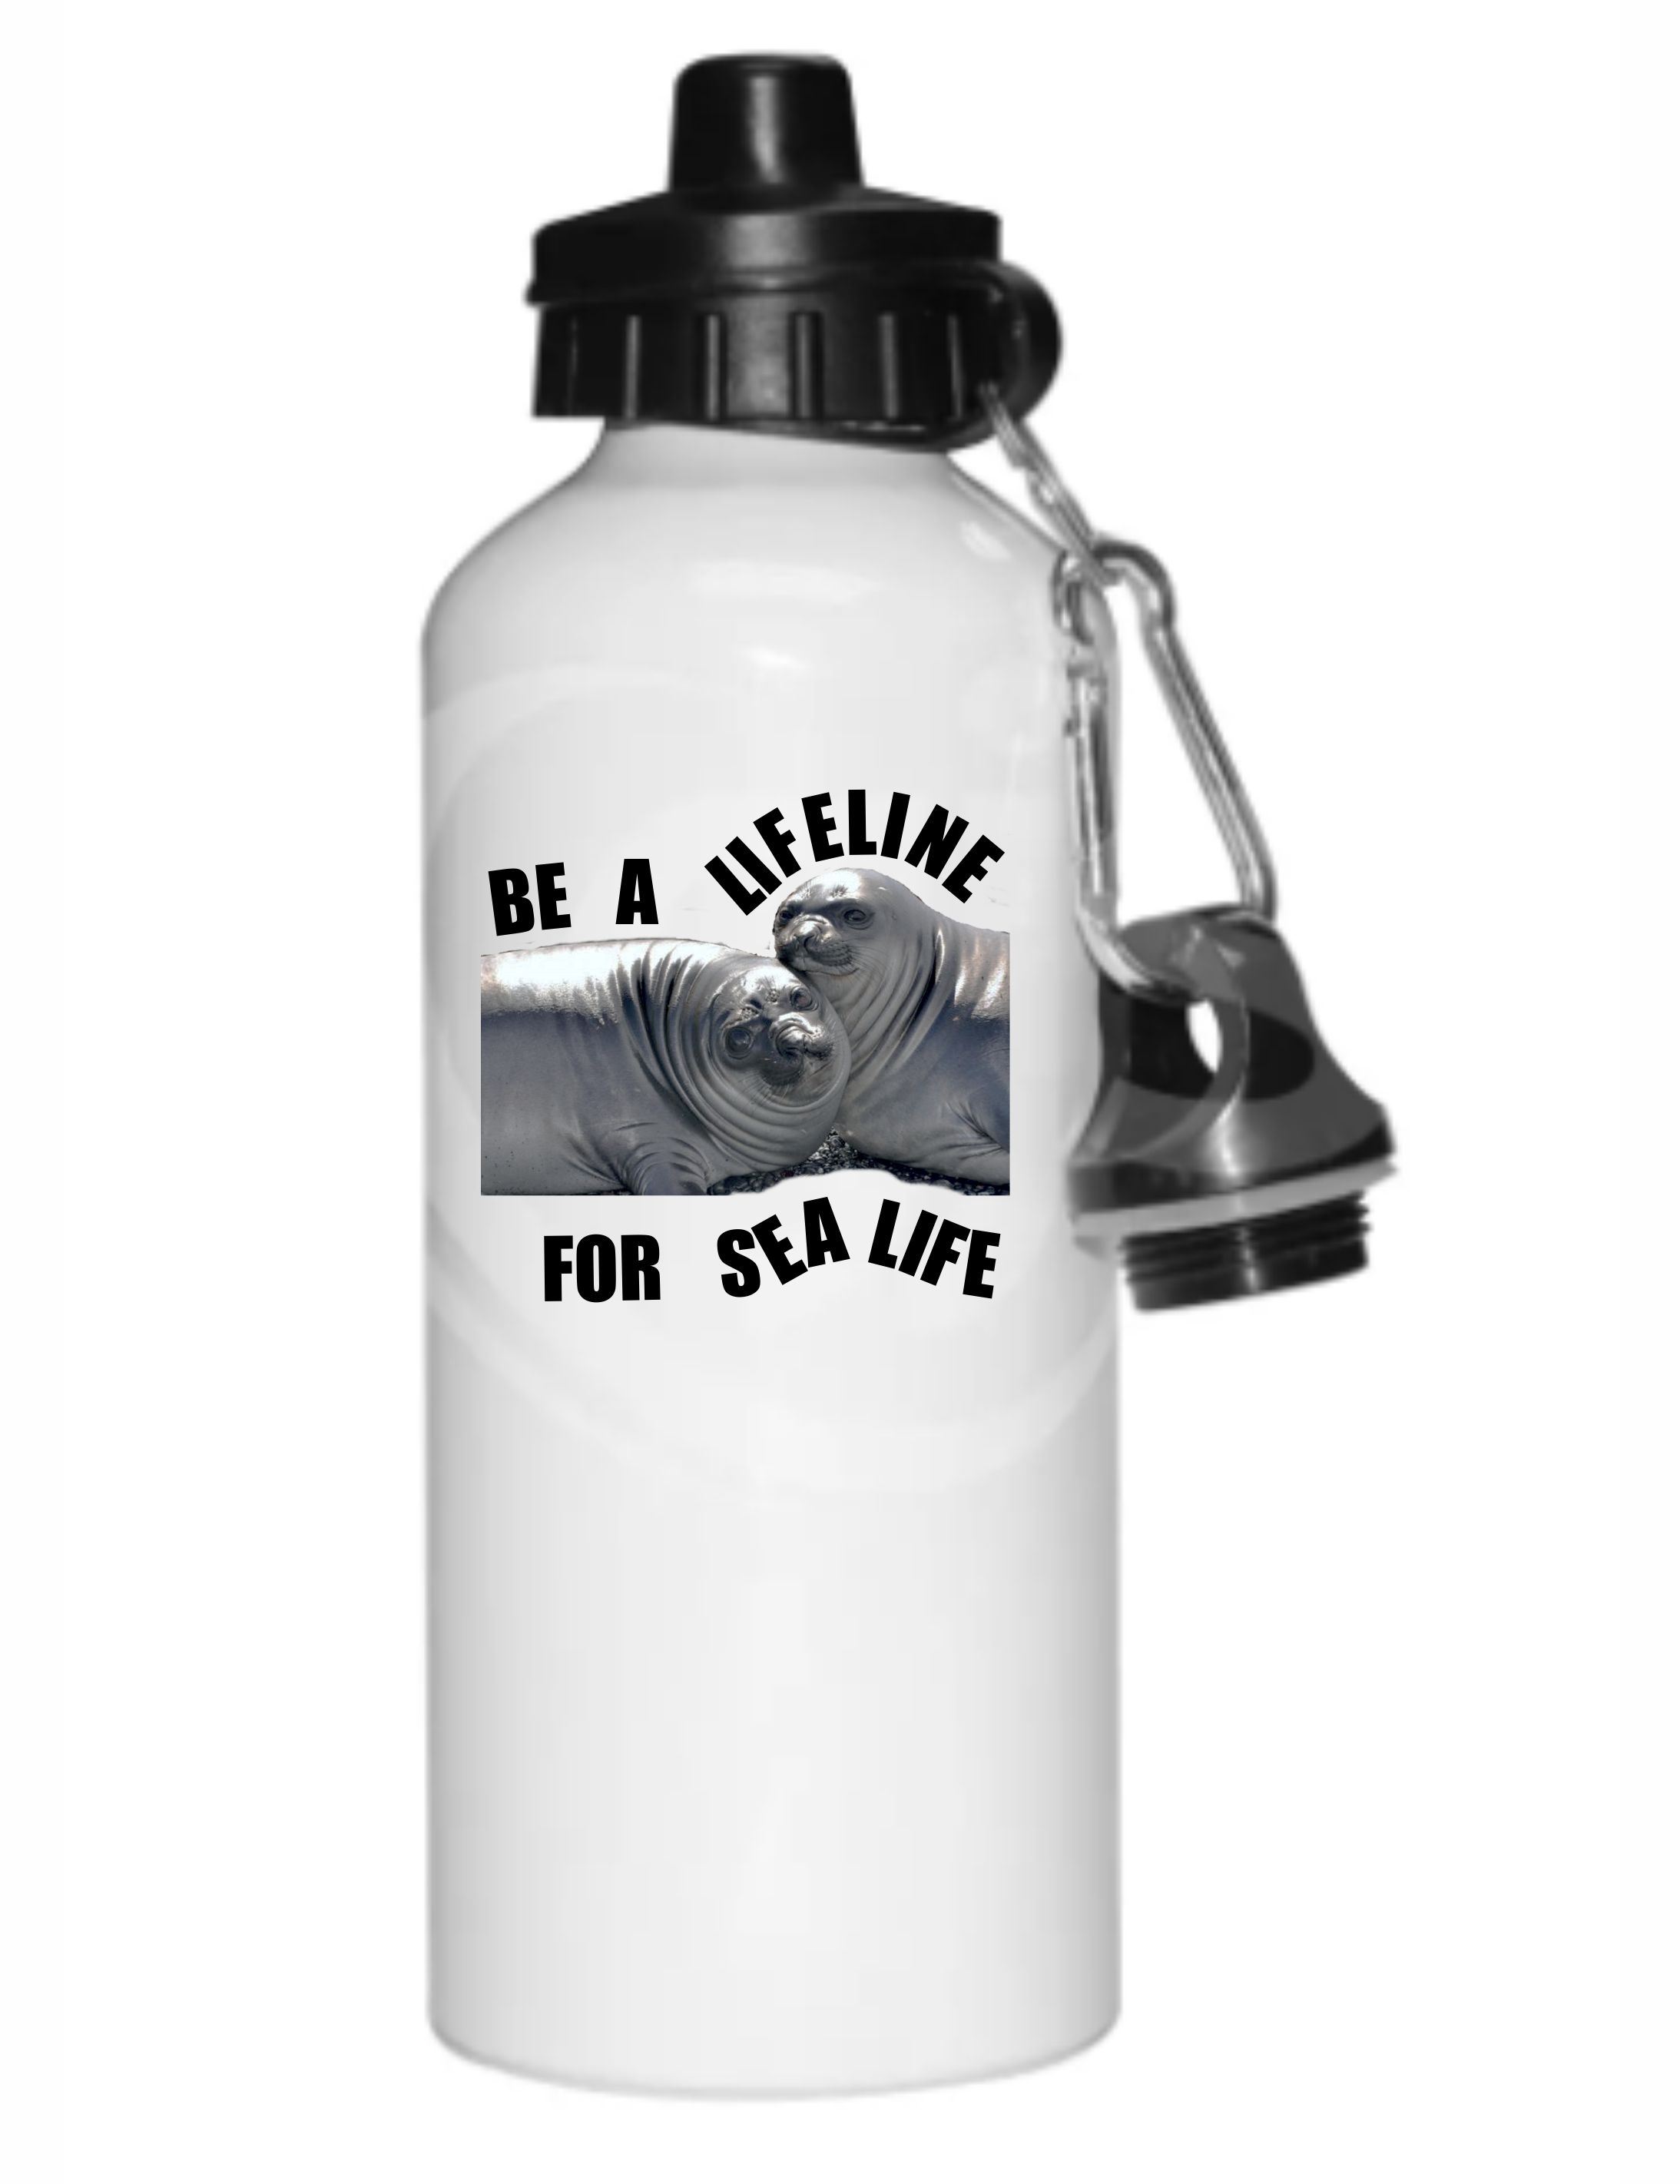 Stemm Seal Lifeline Drink bottle